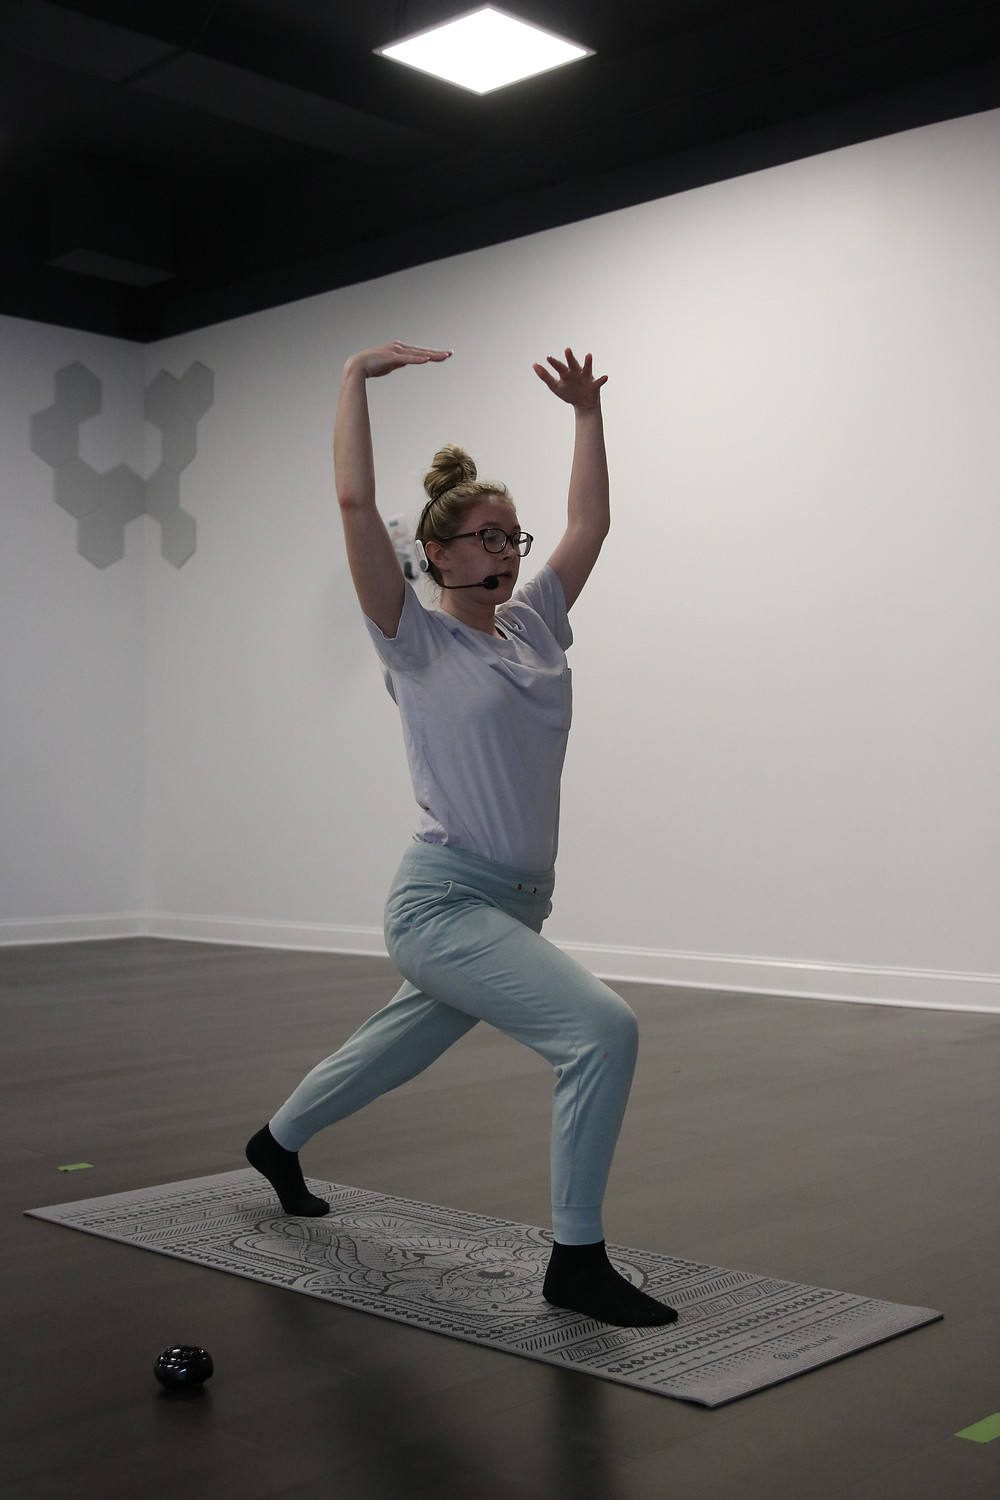 A woman completes a yoga pose in yoga studio.